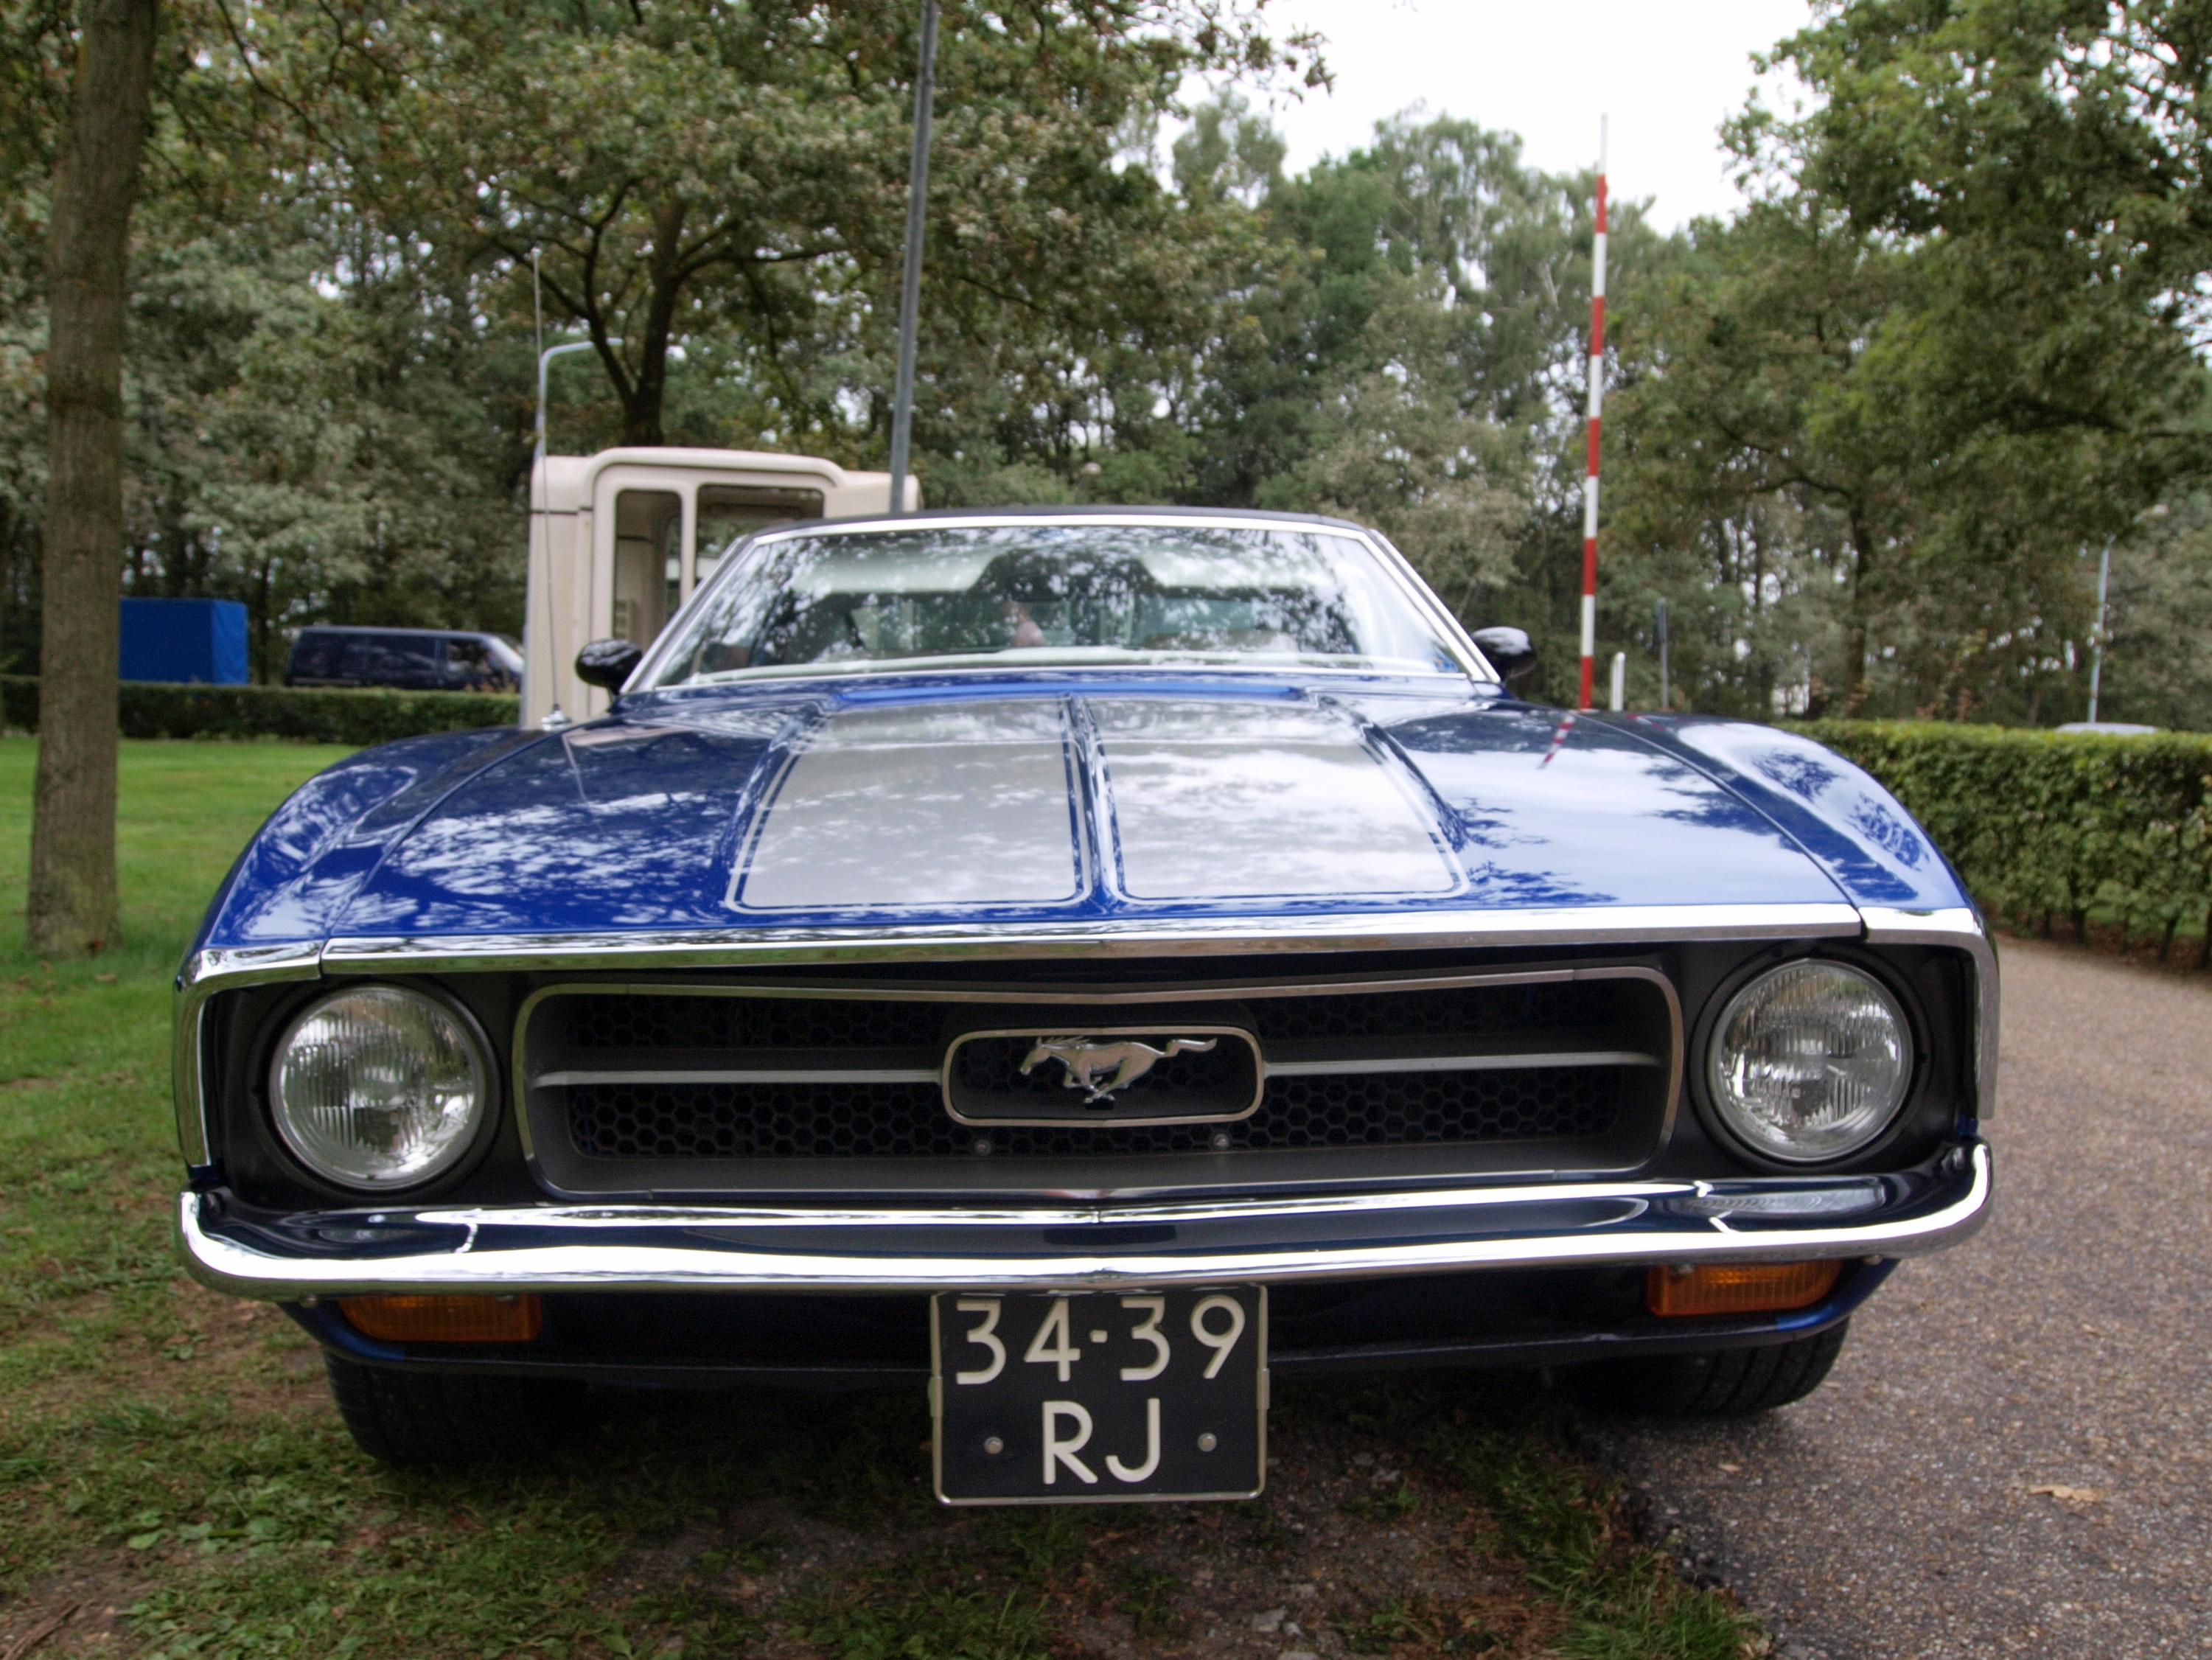 File 34 39 Rj Ford Mustang 1970 At The Autotron Oldtimer